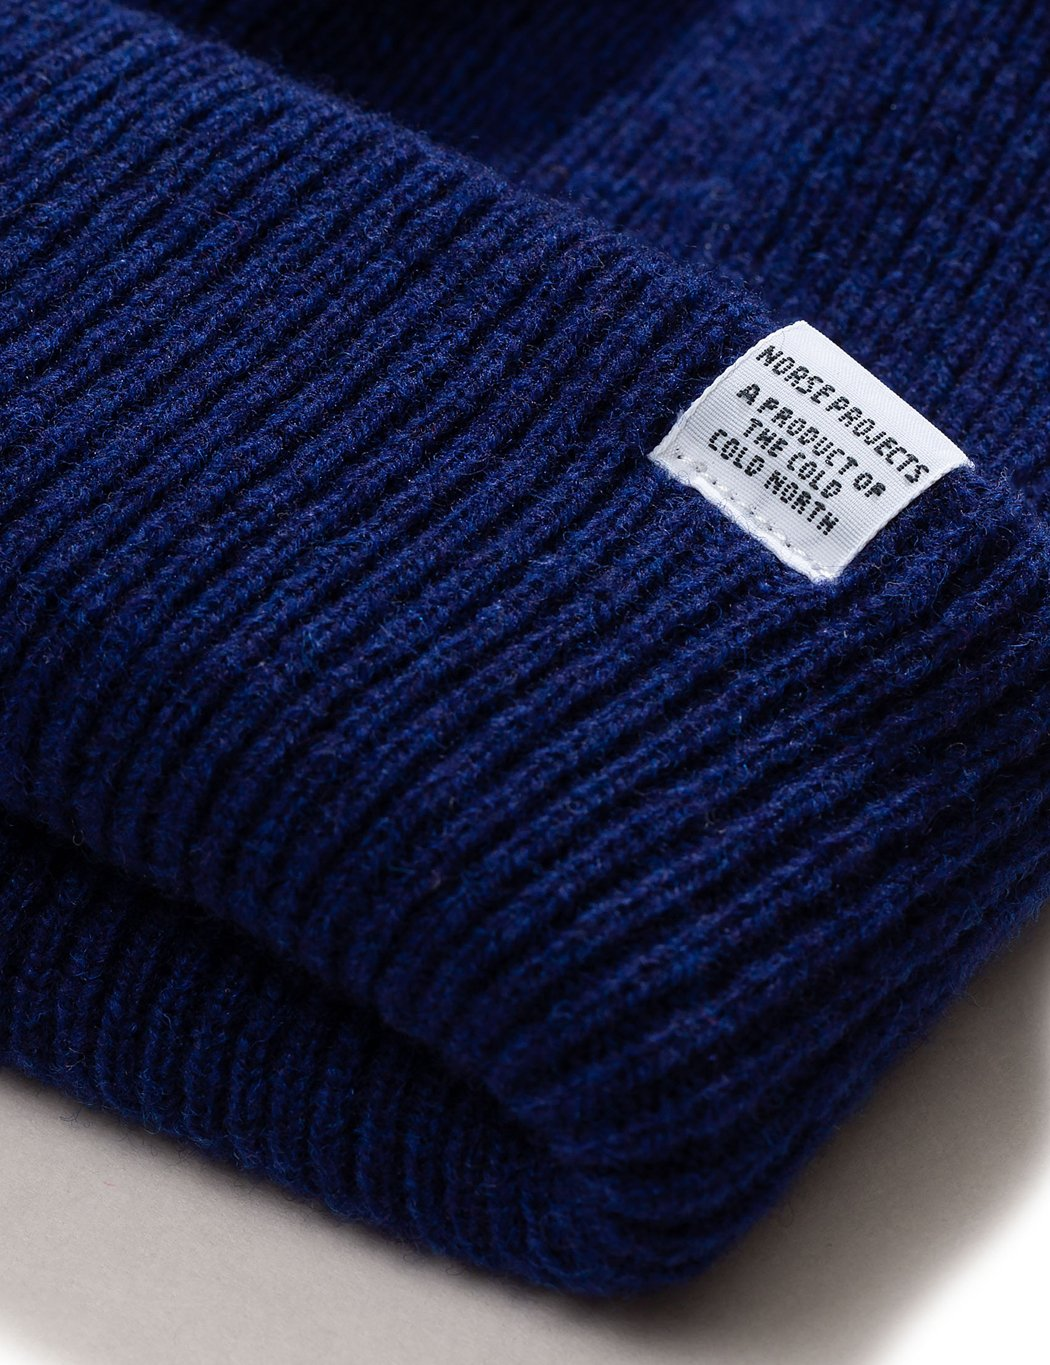 Norse Projects Strickmütze Brushed (Wolle) - Dämmerung Blau